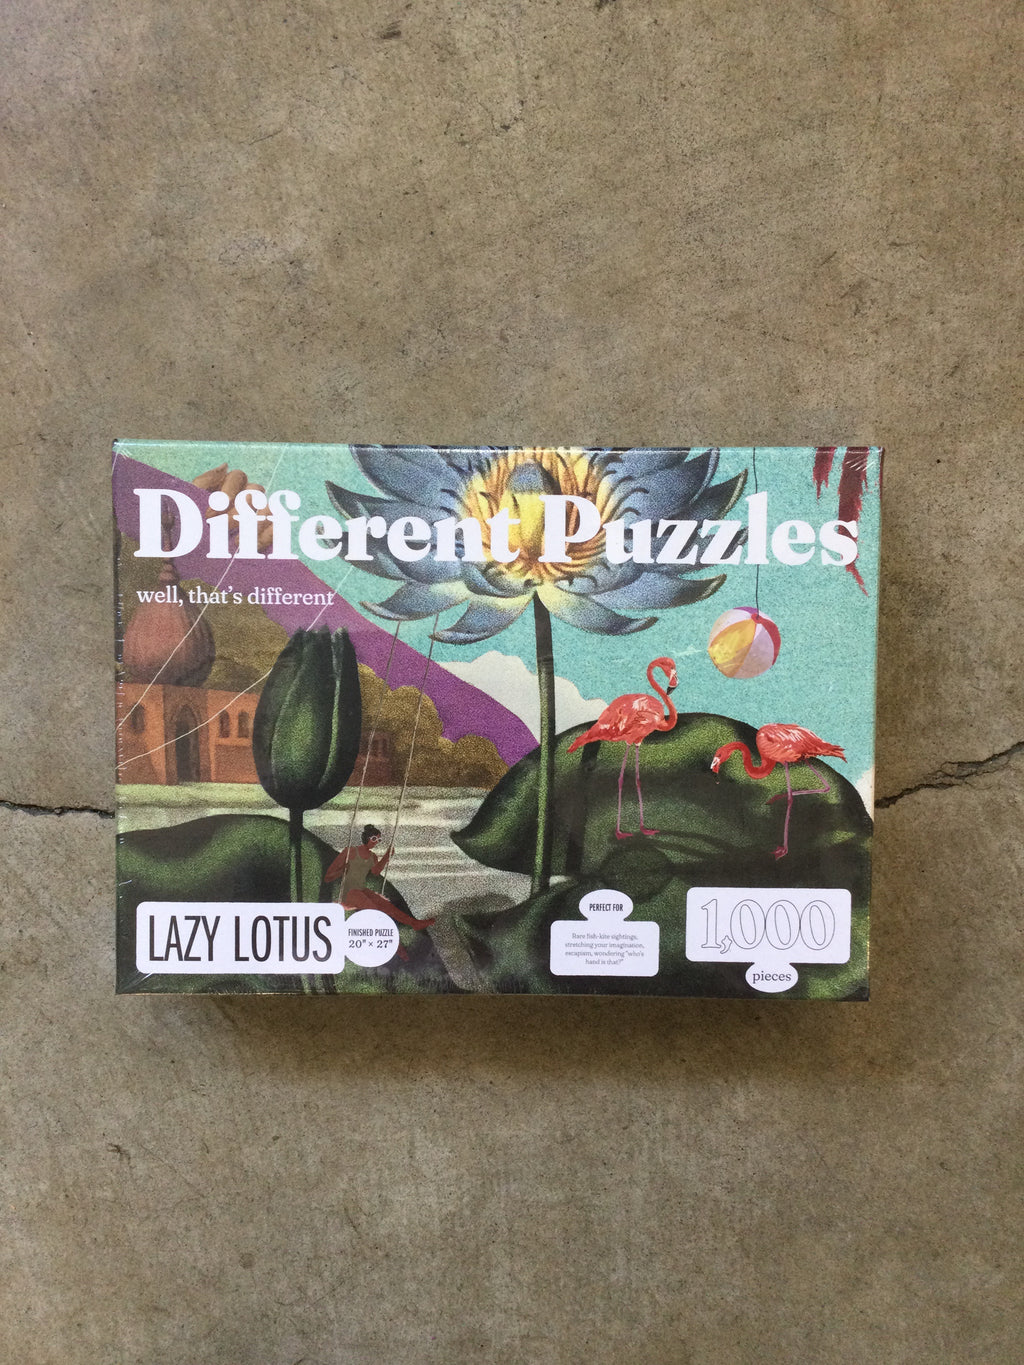 Different Puzzles - 1000 Pieces - Lazy Lotus